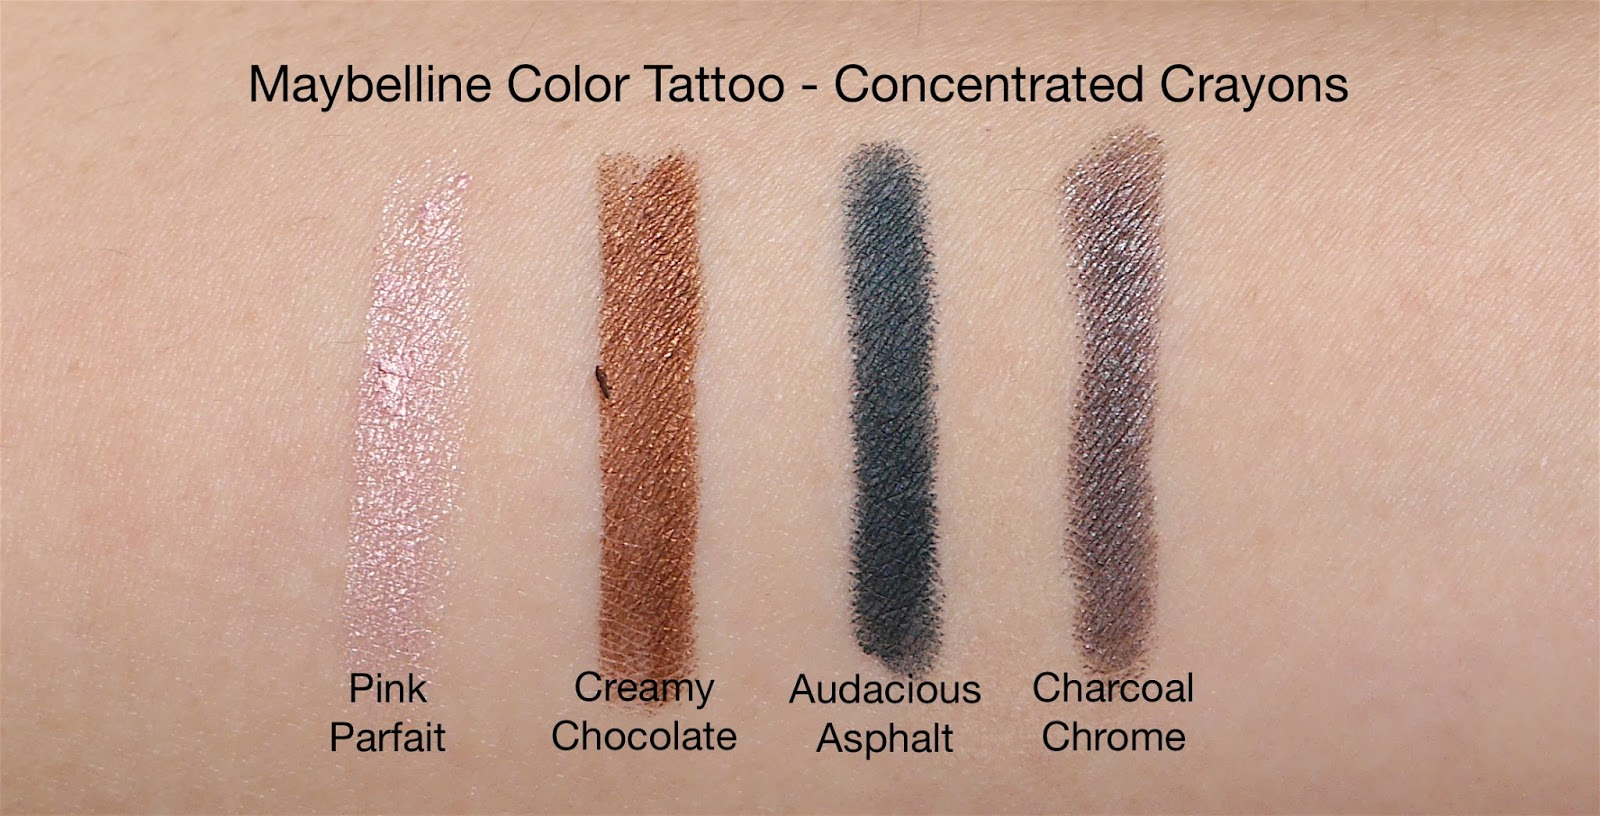 The maybelline color tattoo addition ft the concentrated for Color tattoo maybelline